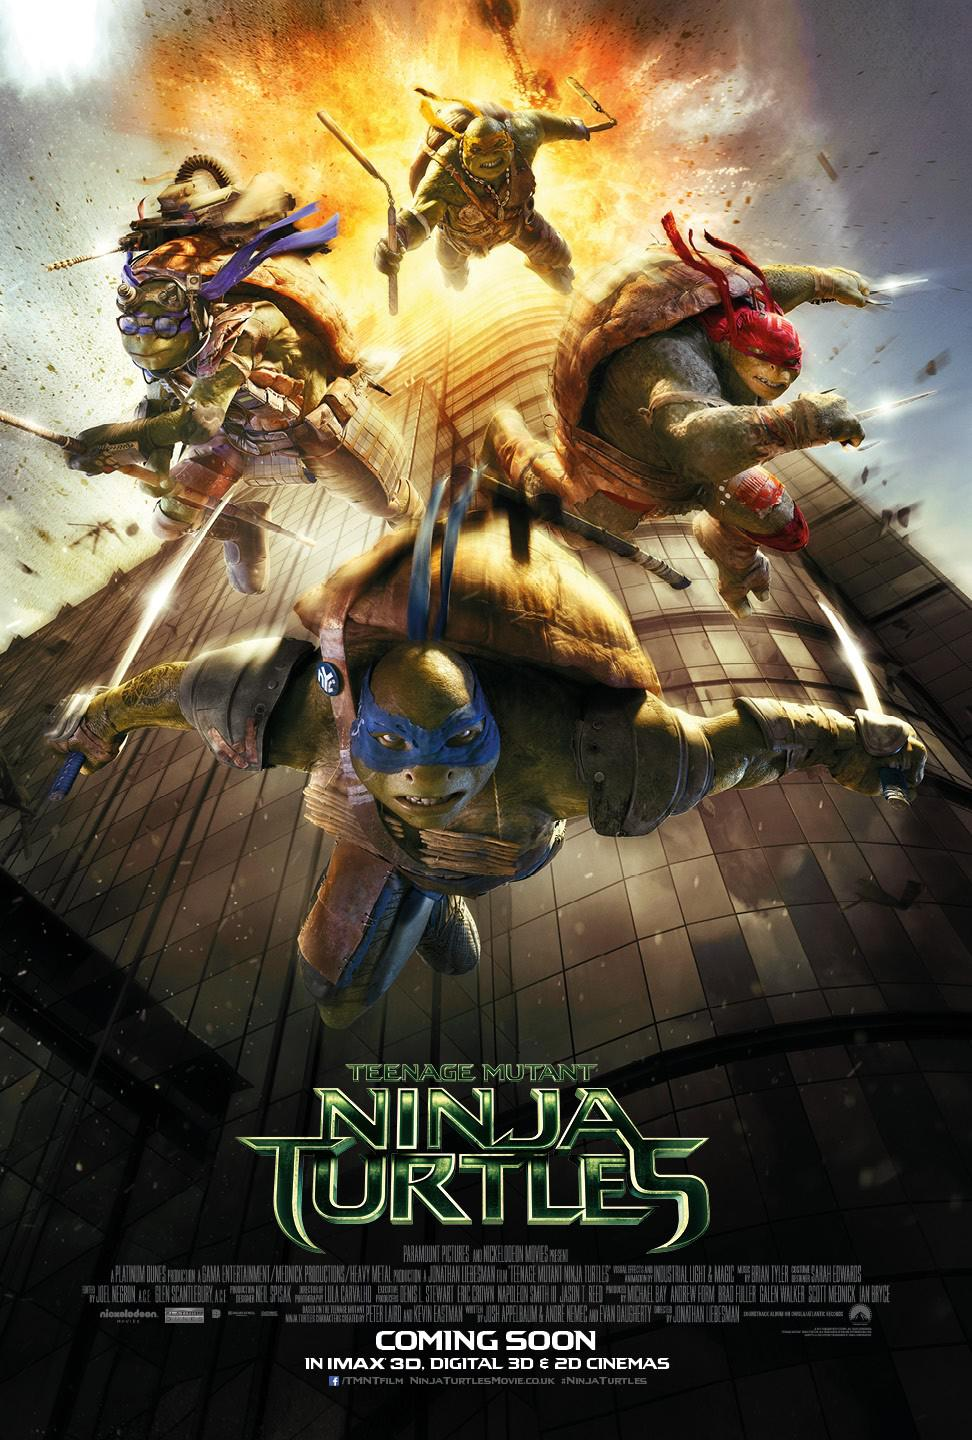 TMNT - Teenage Mutant Ninja Turtles (1990)